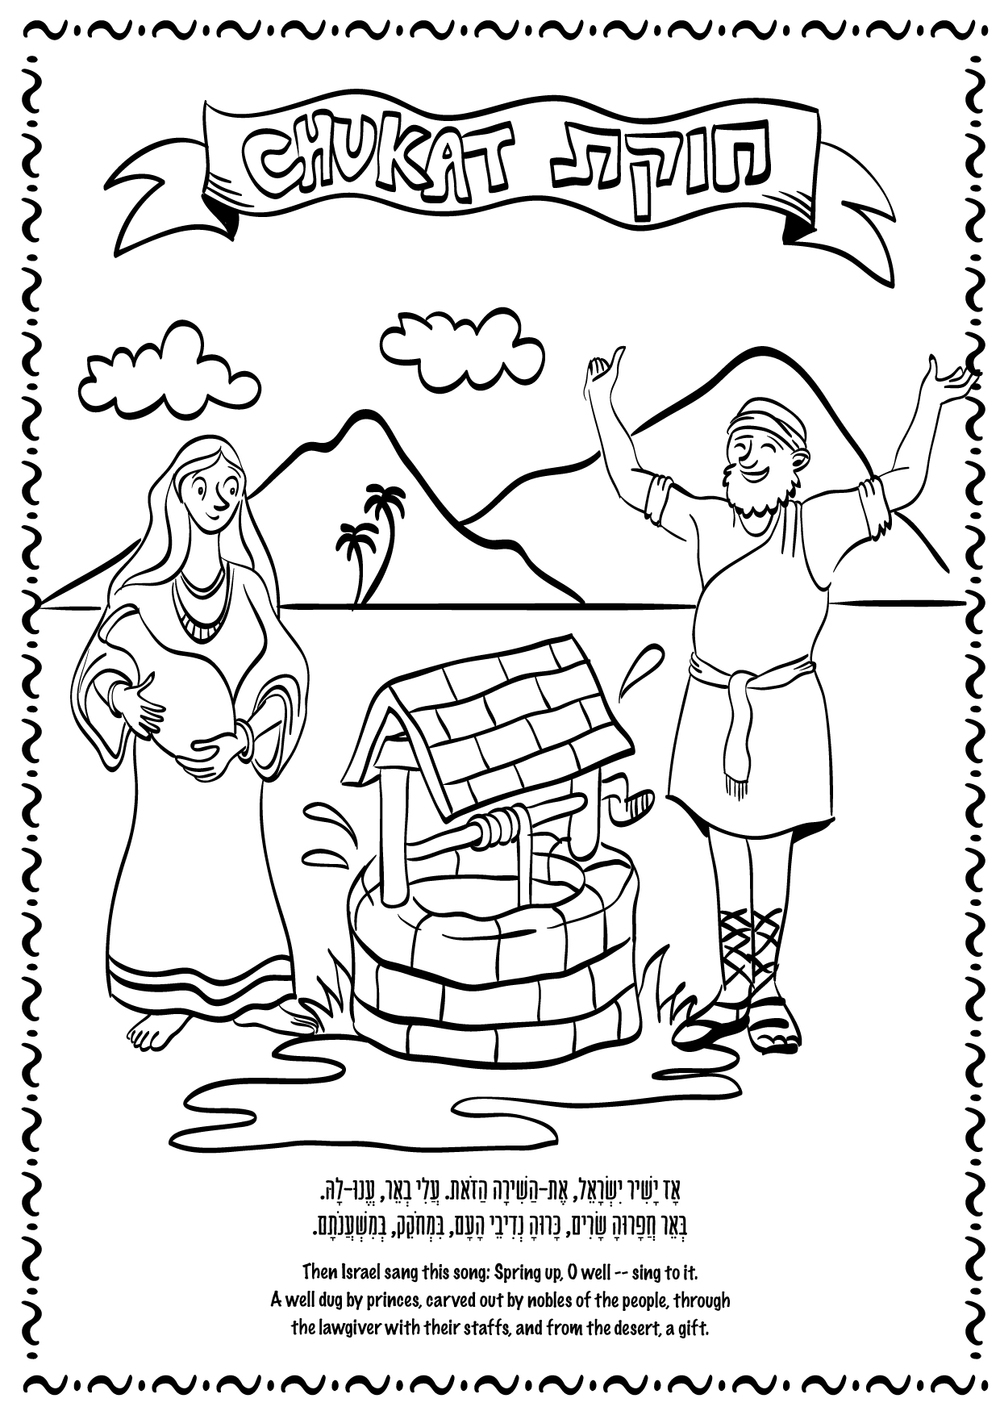 Uncategorized Torah Coloring Pages one parsha at a time coloring pages aim to make torah more caption the challah crumbs page for portion